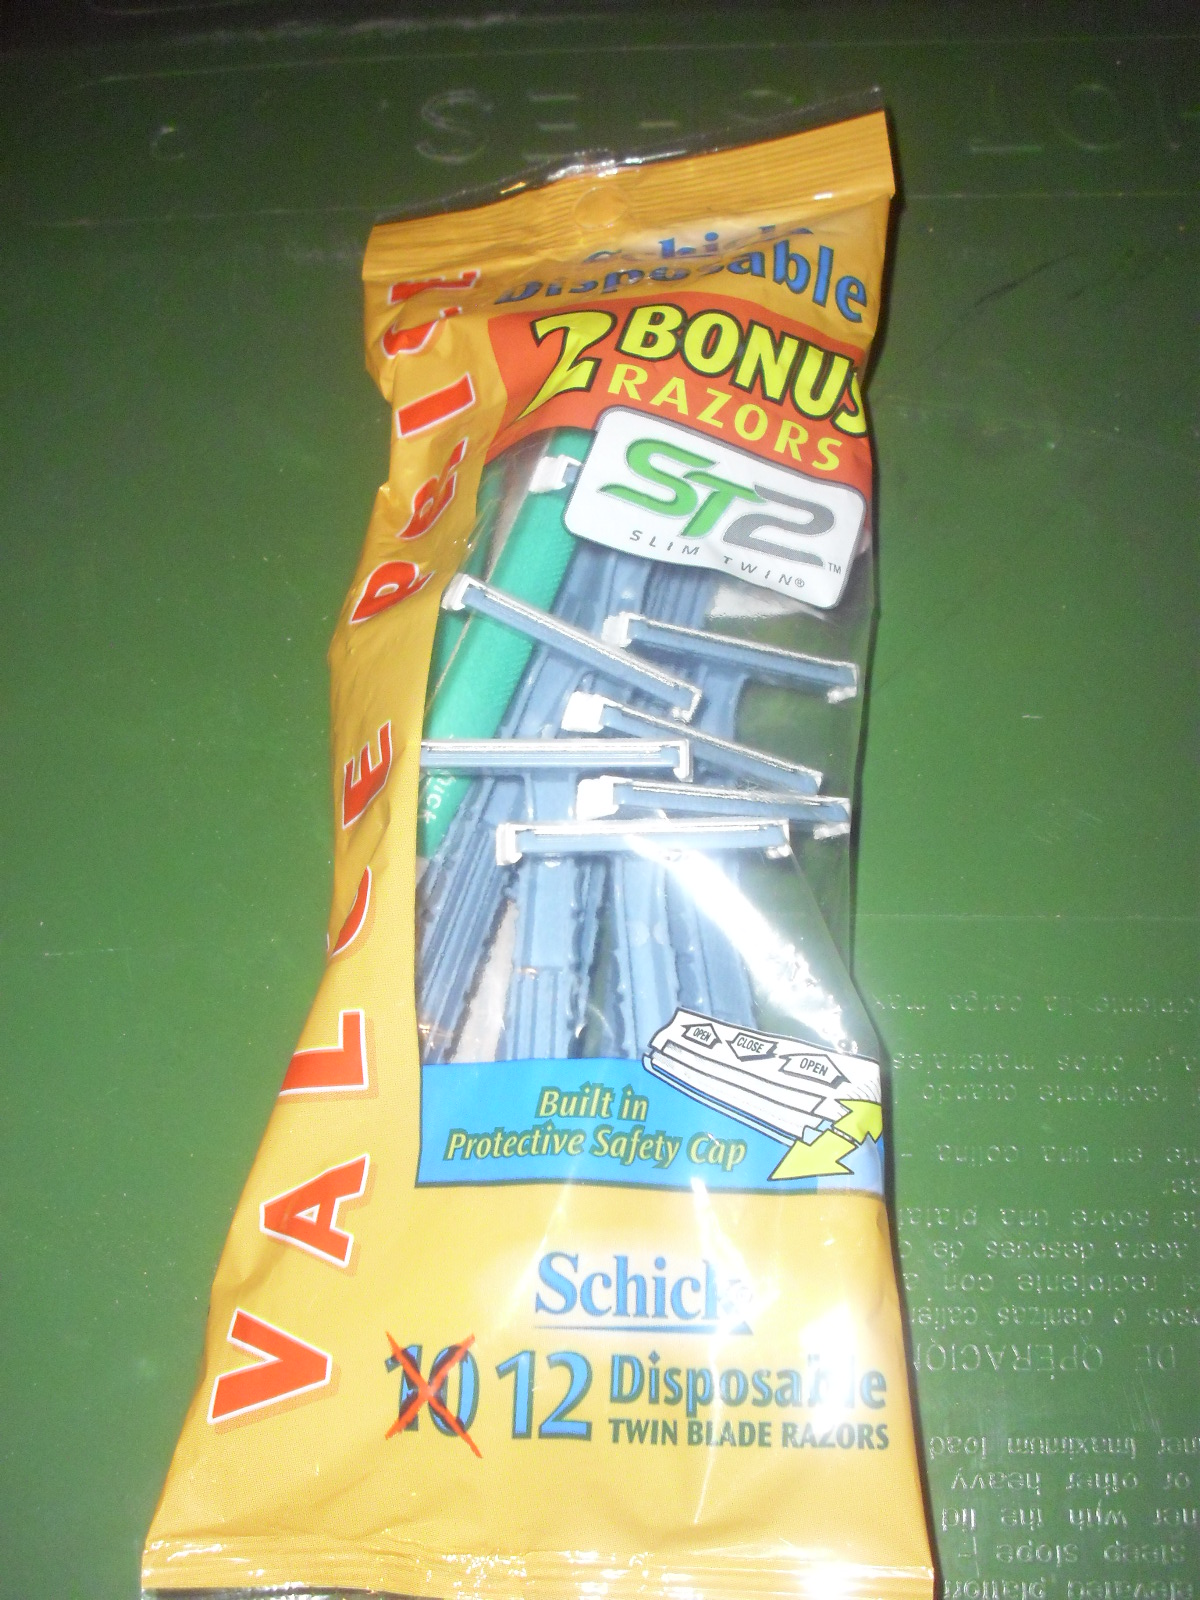 schick disposable razor